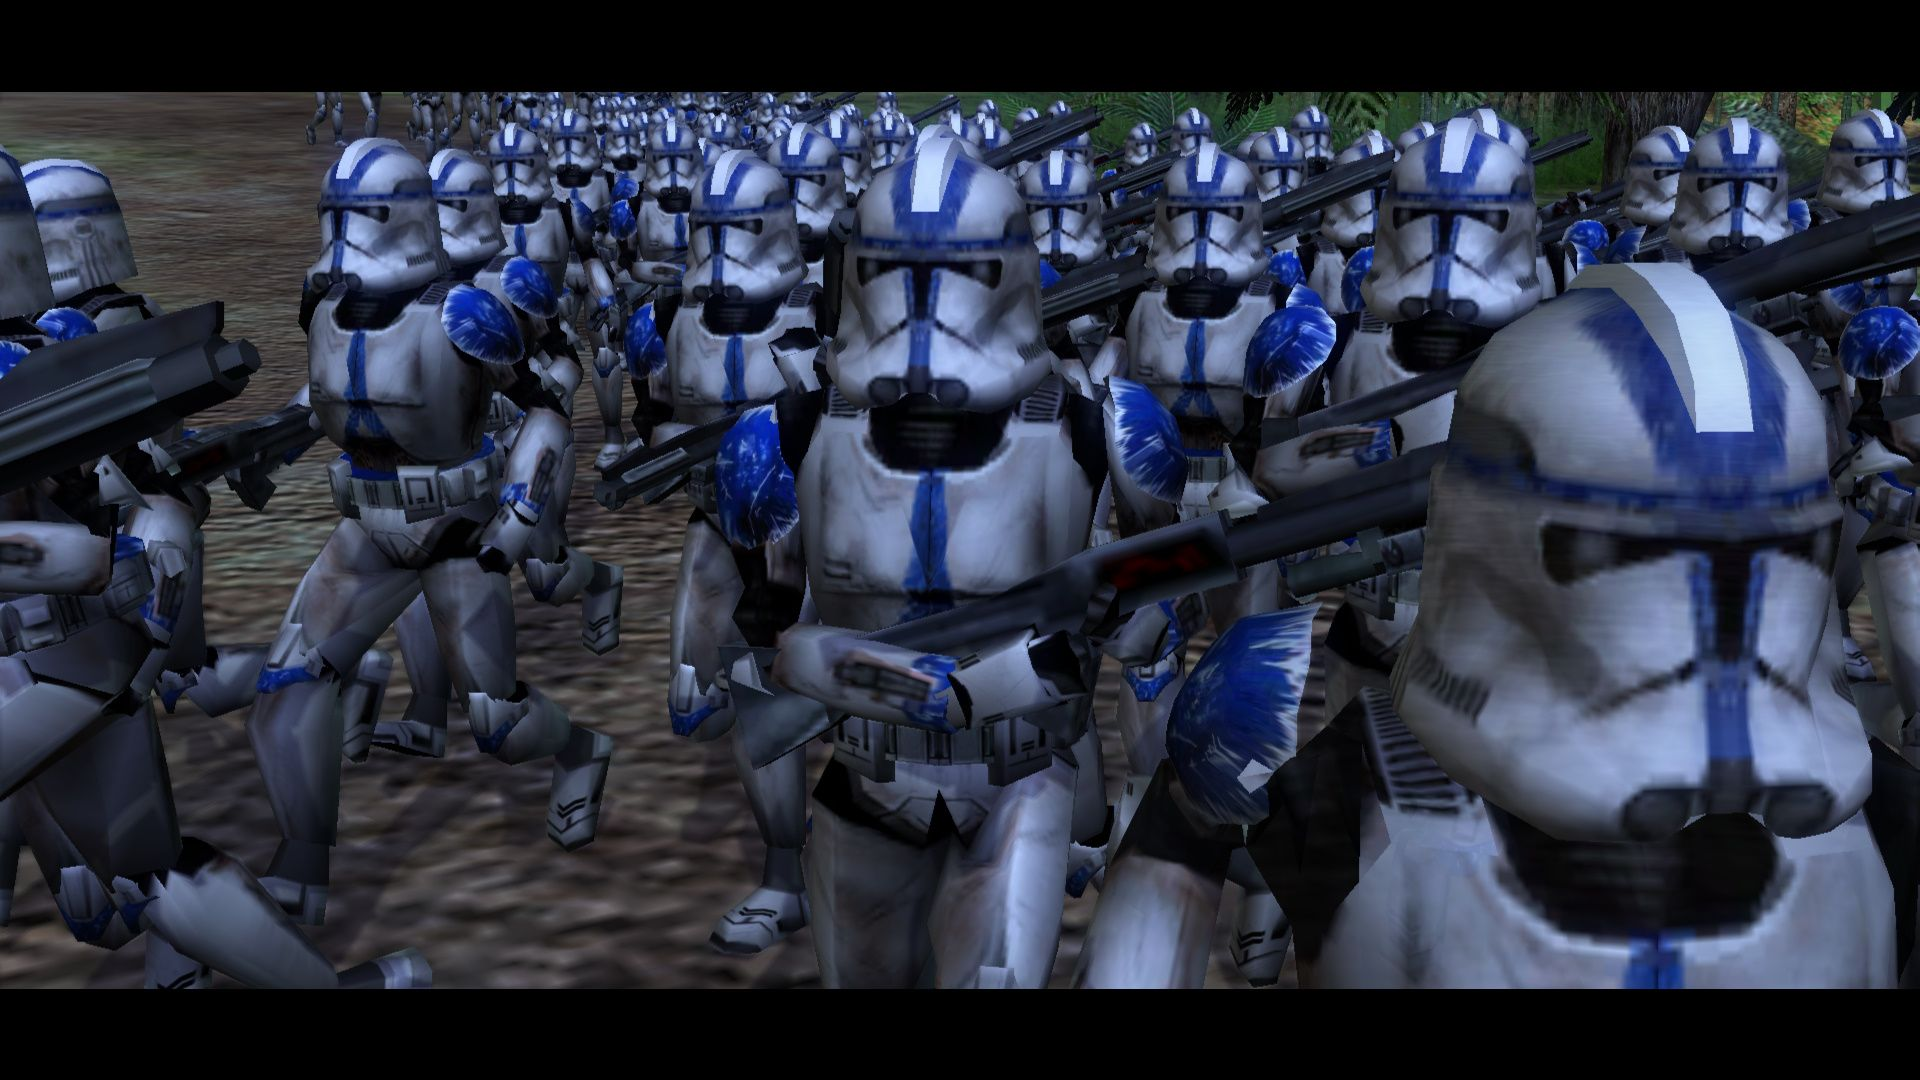 501st Clone Trooper Wallpapers Top Free 501st Clone Trooper Backgrounds Wallpaperaccess